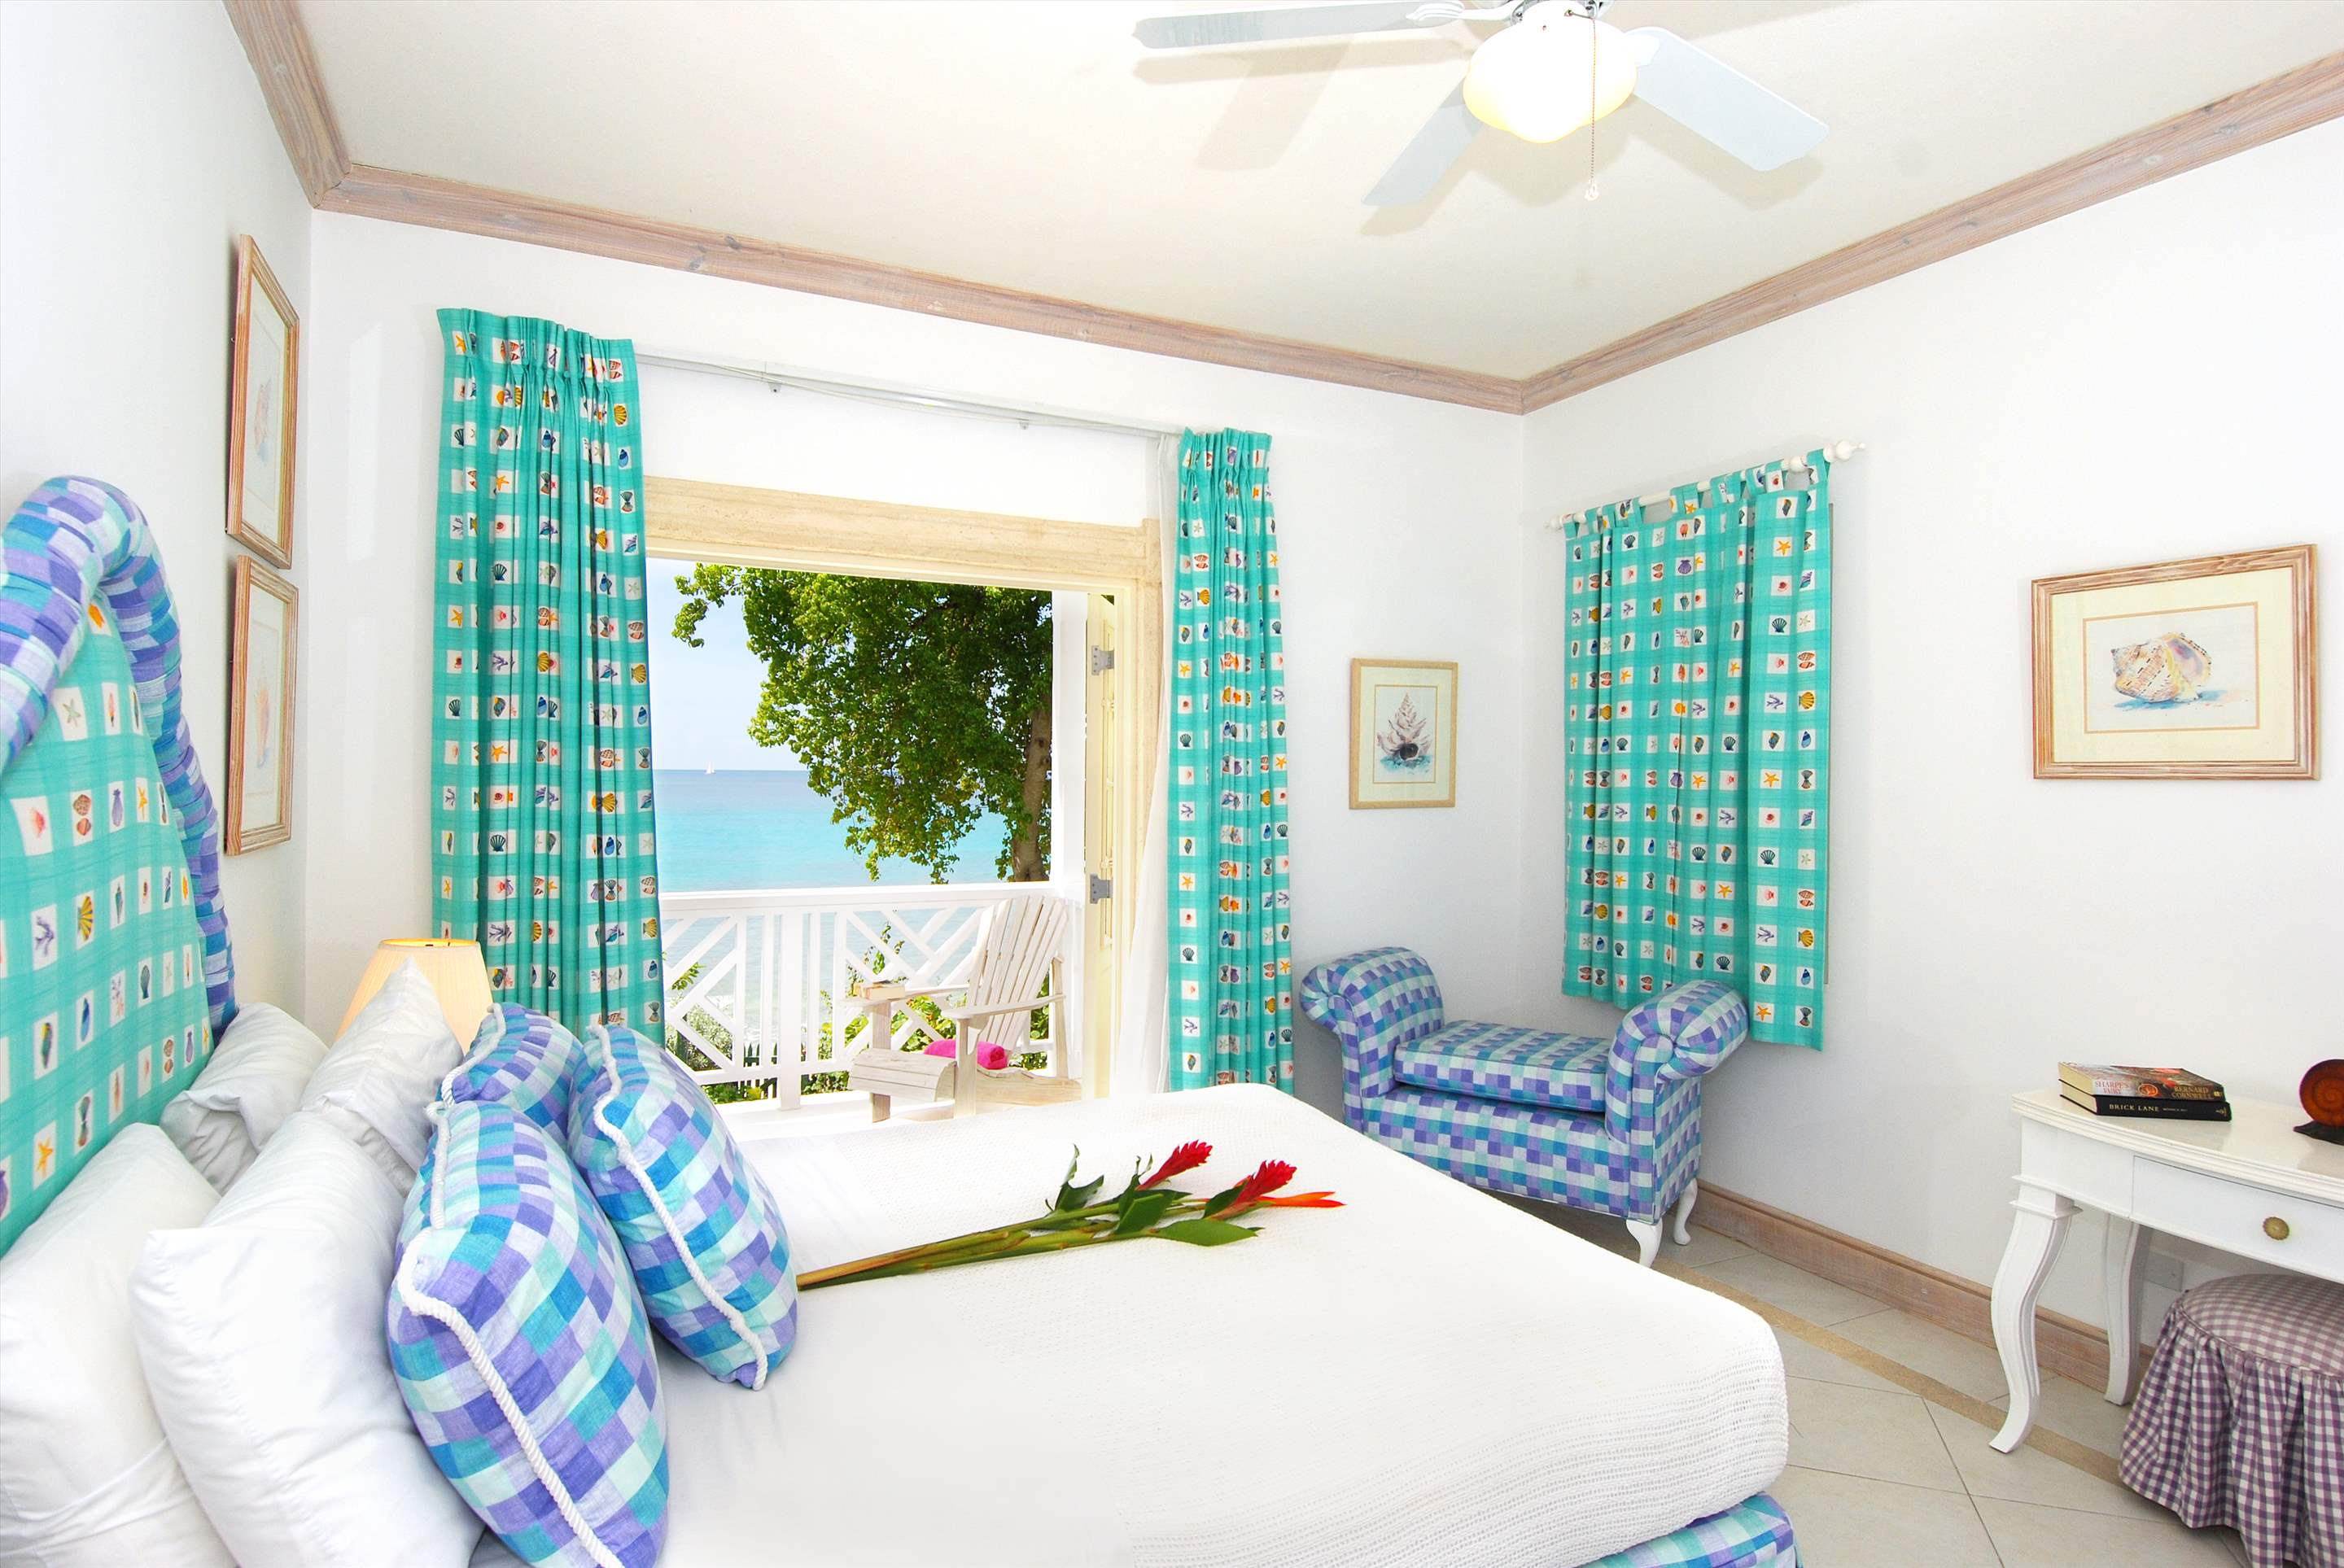 Fathom's End, 3 bedroom villa in St. James & West Coast, Barbados Photo #13